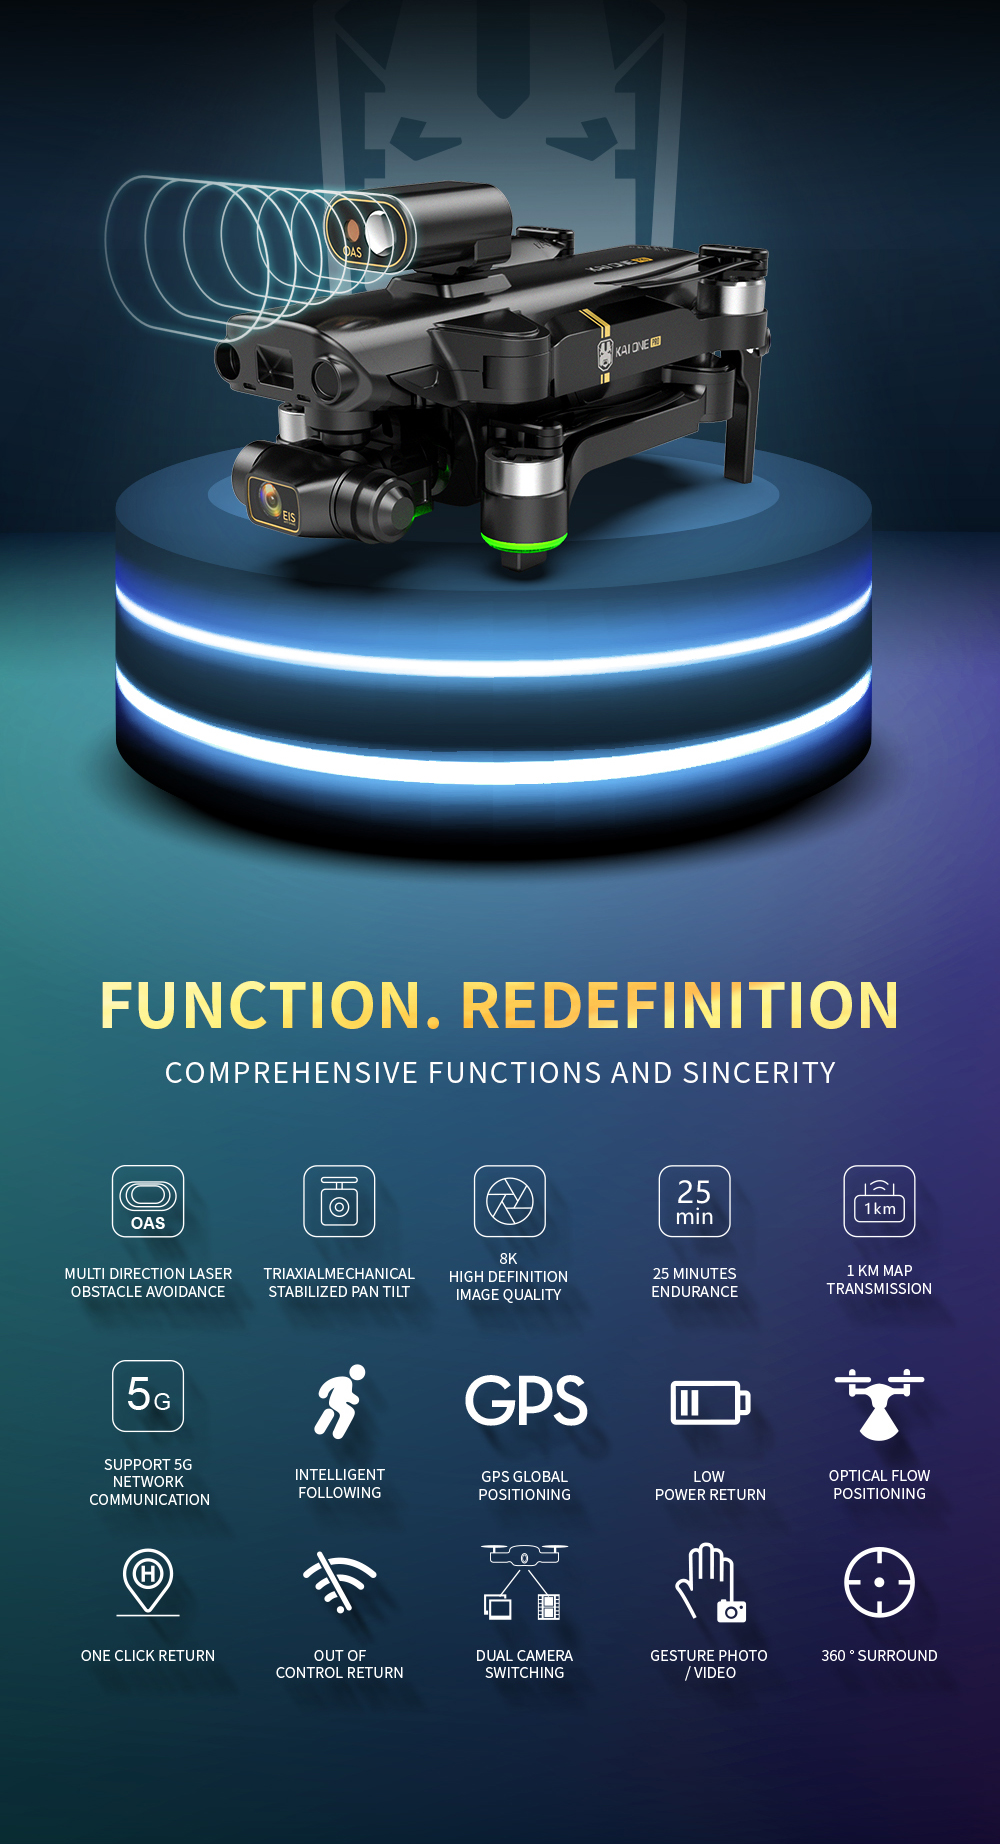 Hea78ffbb86b443359955b6dad4a58849q - KAI ONE MAX GPS Obstacle Avoidance Drone Professional 4K/8K HD Dual Camera 3 Axis Gimbal Brushless RC Foldable Quadcopter Gifts